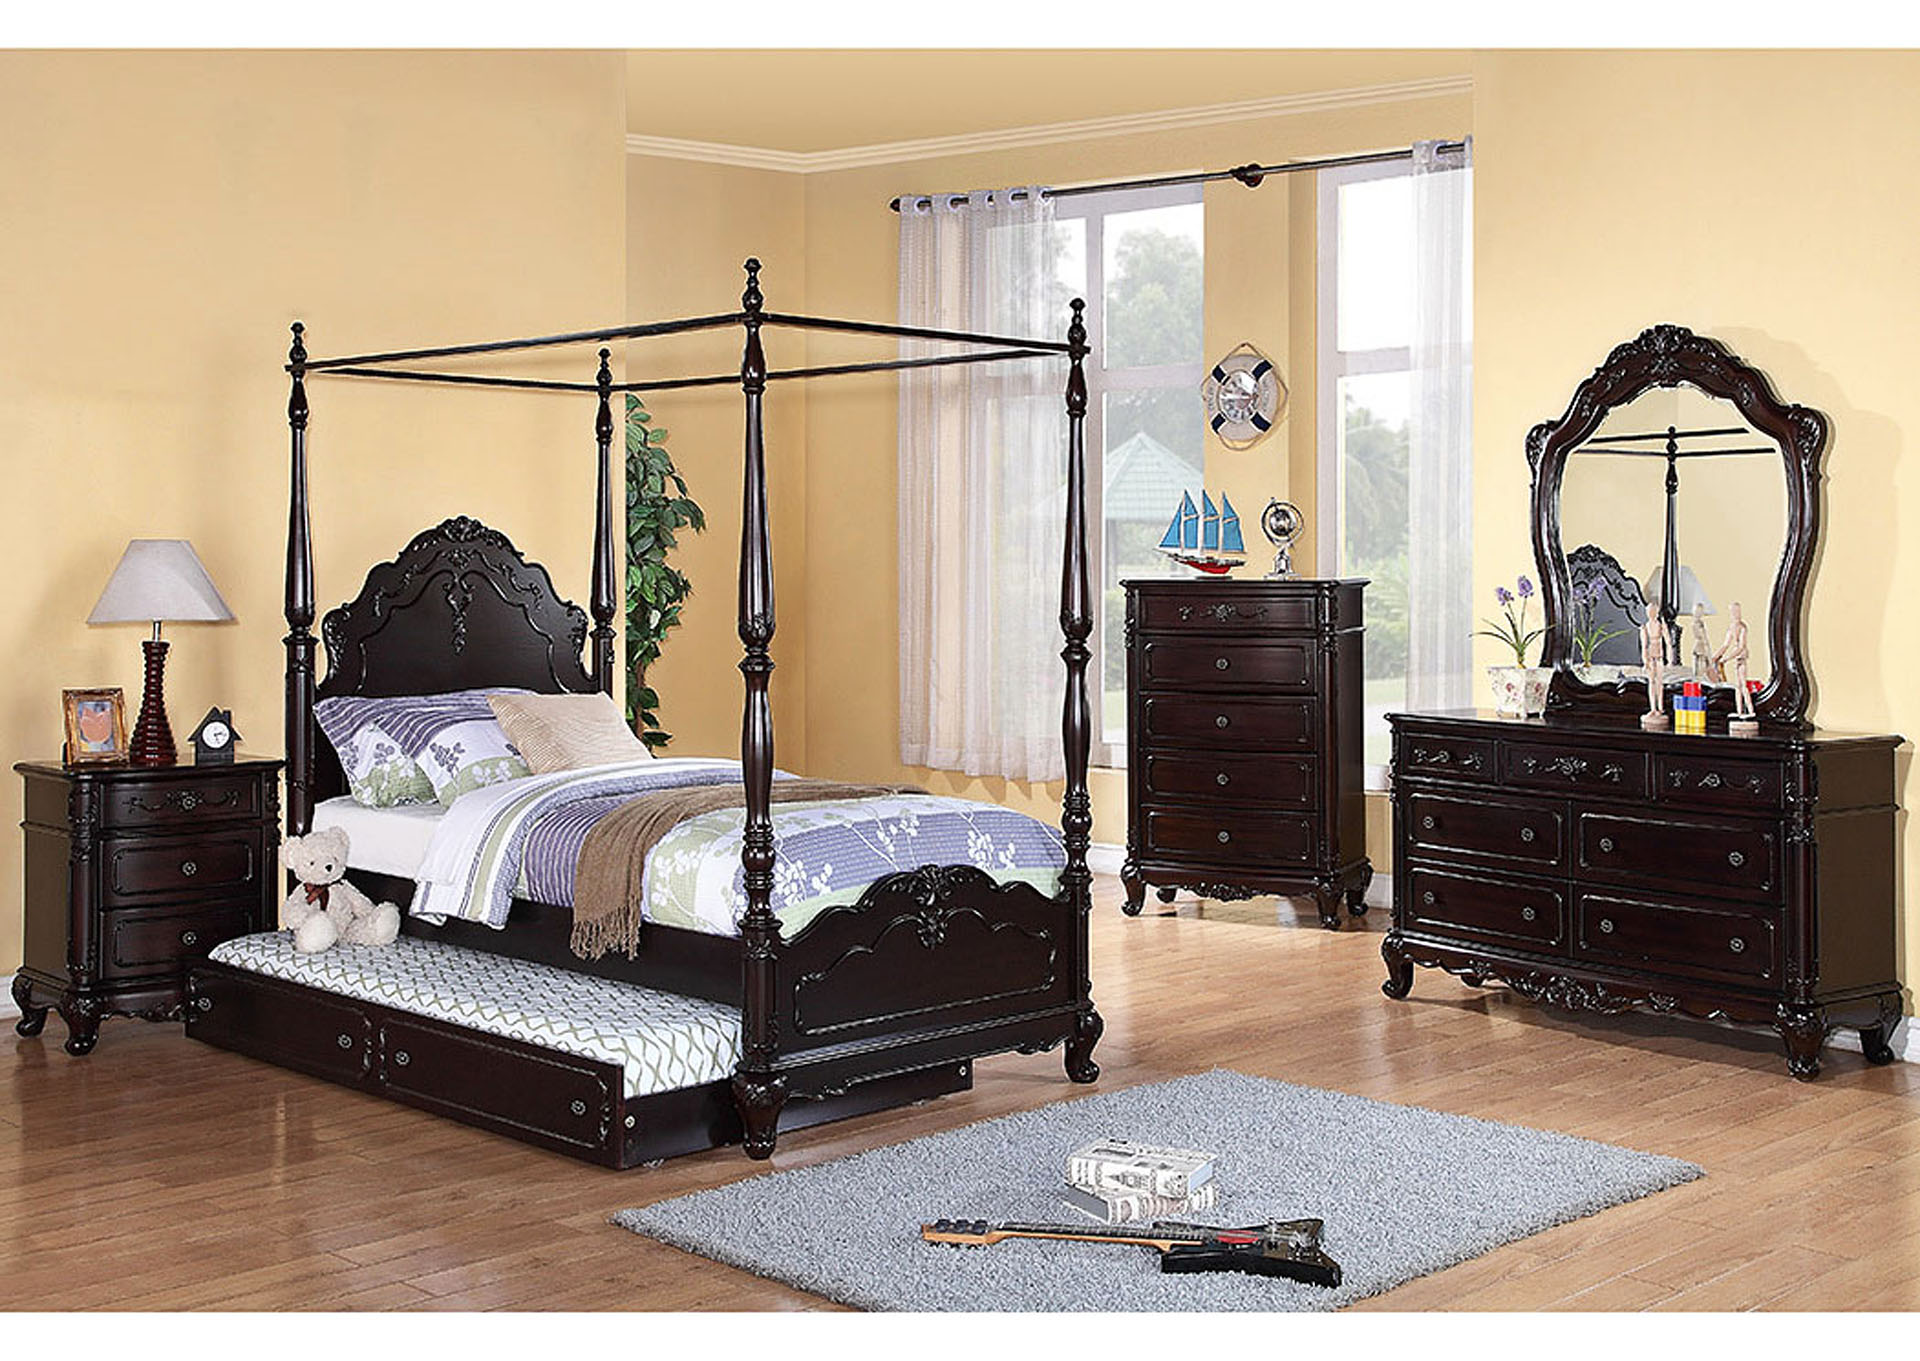 Cinderella Dark Cherry Twin Canopy Poster Bed,Homelegance